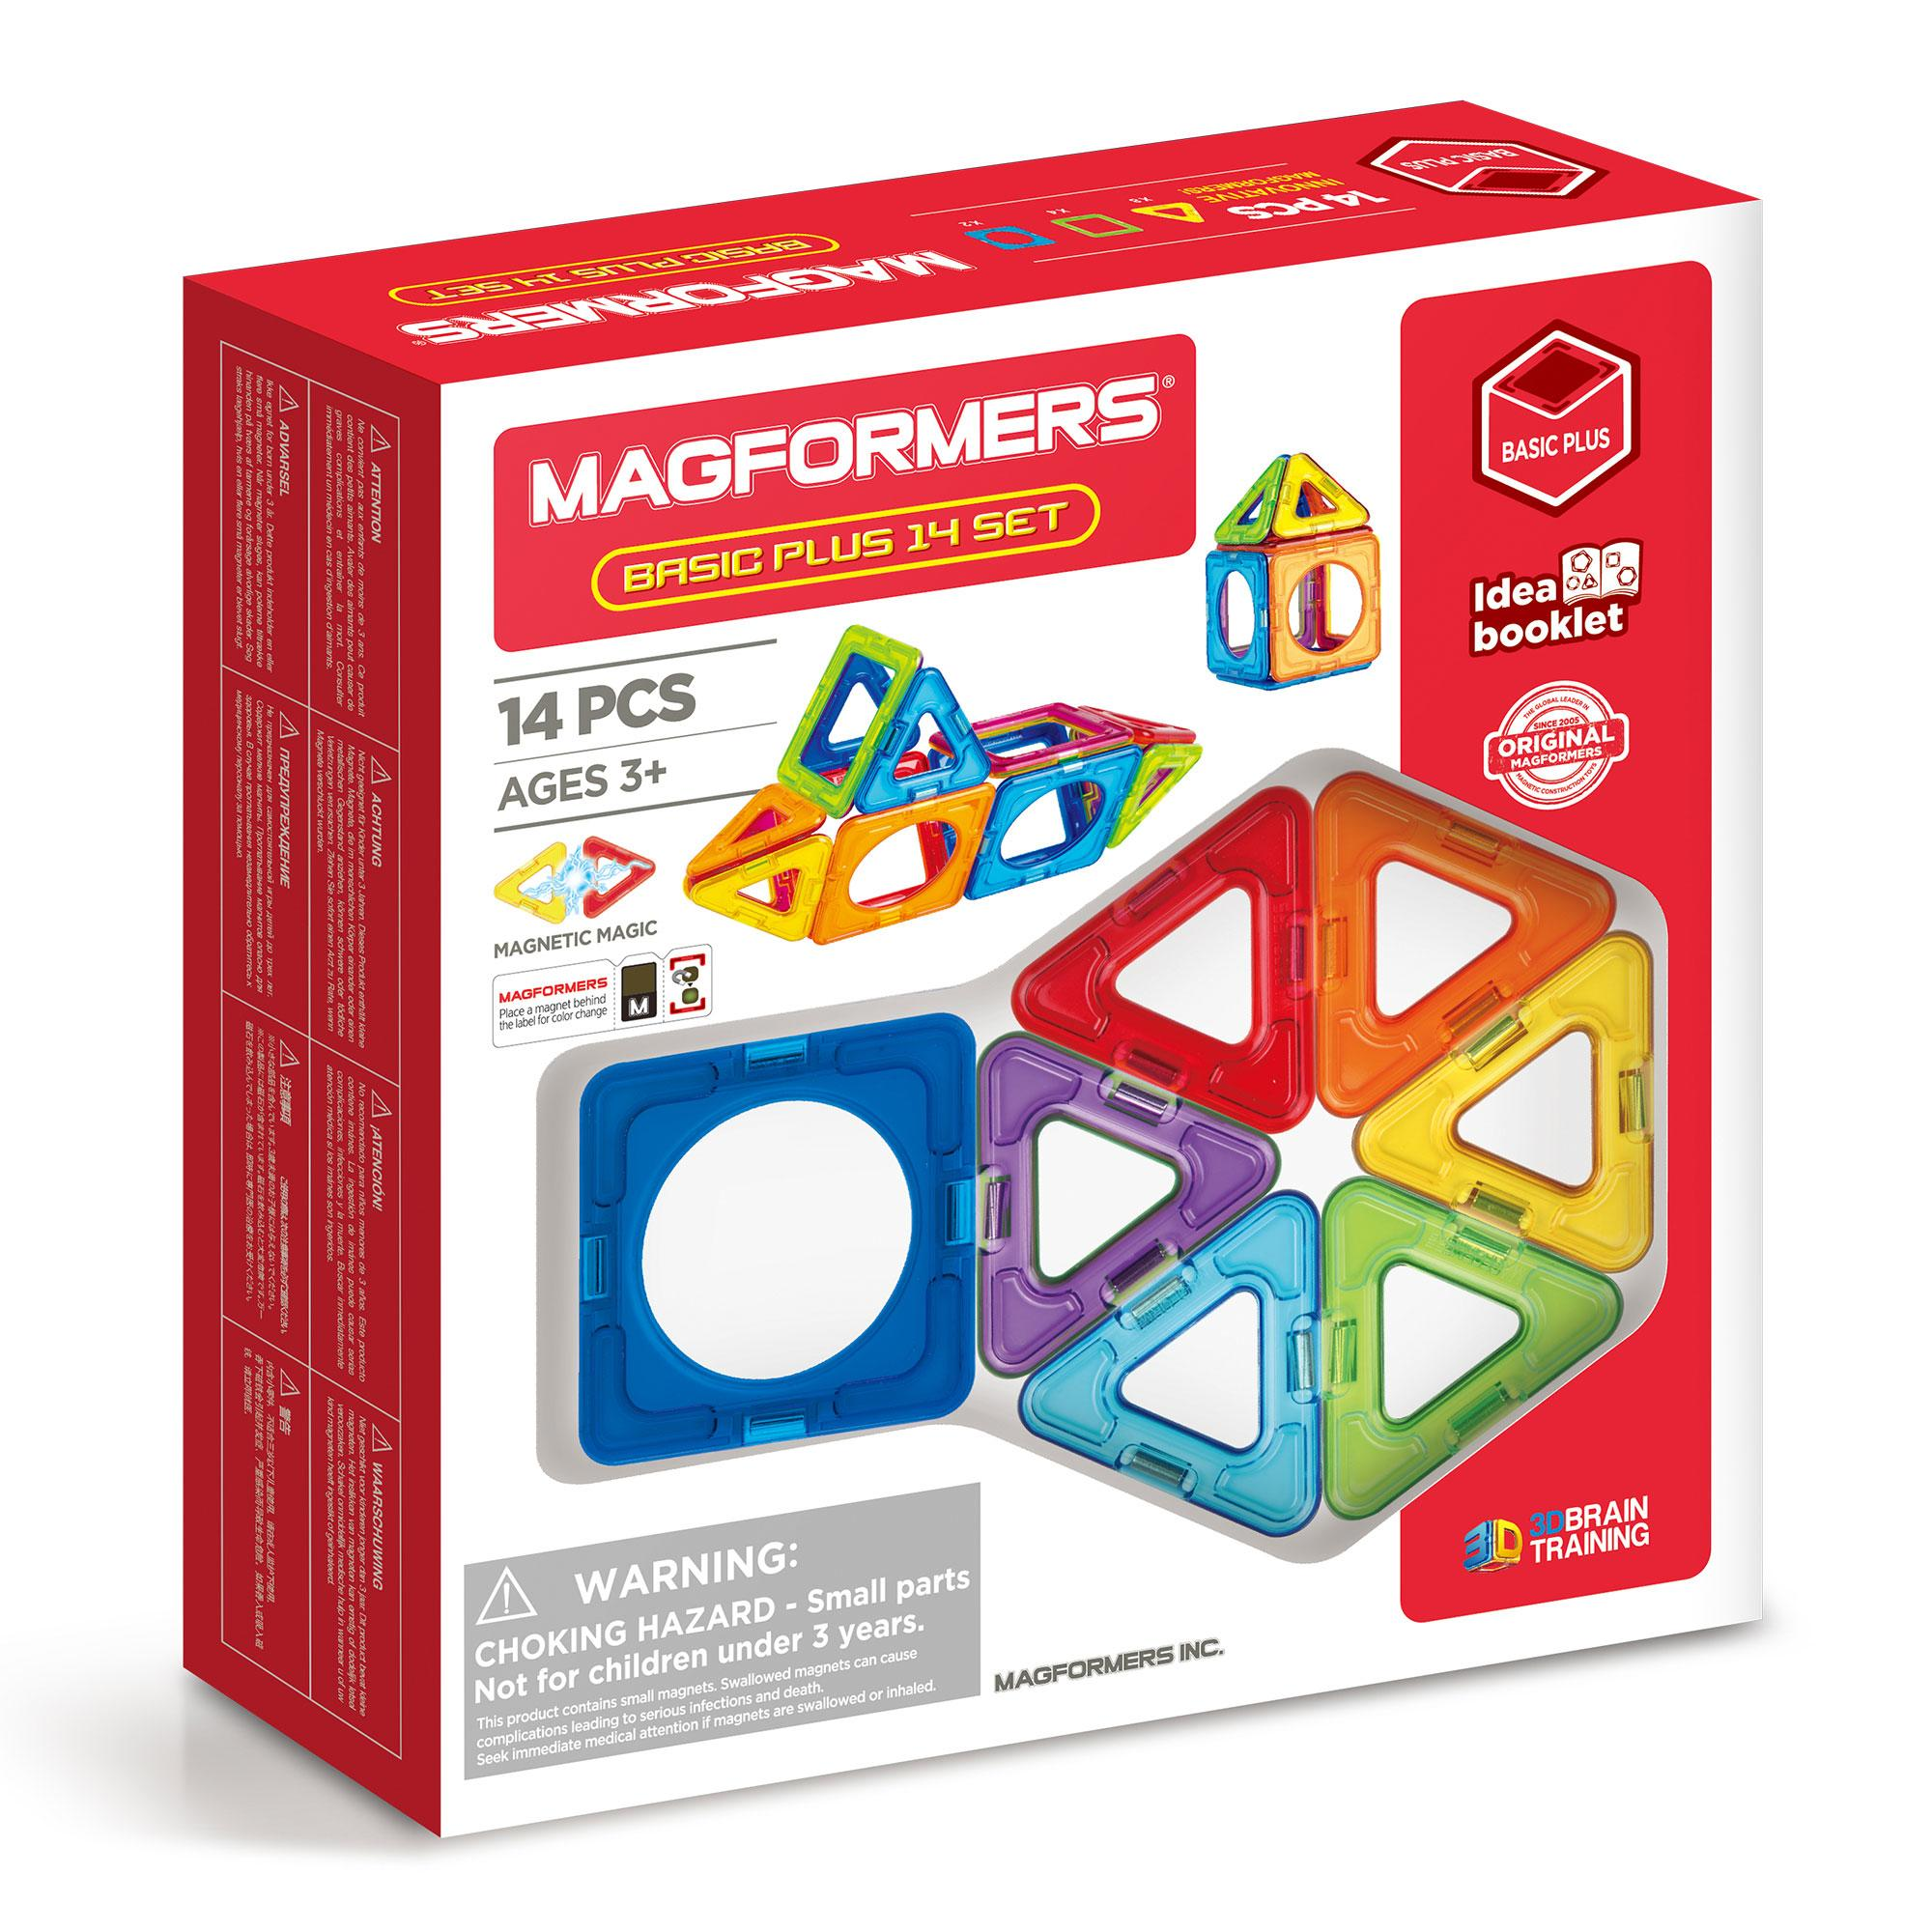 14 piece Magformers educational magnetic playpieces set, bright and colurful